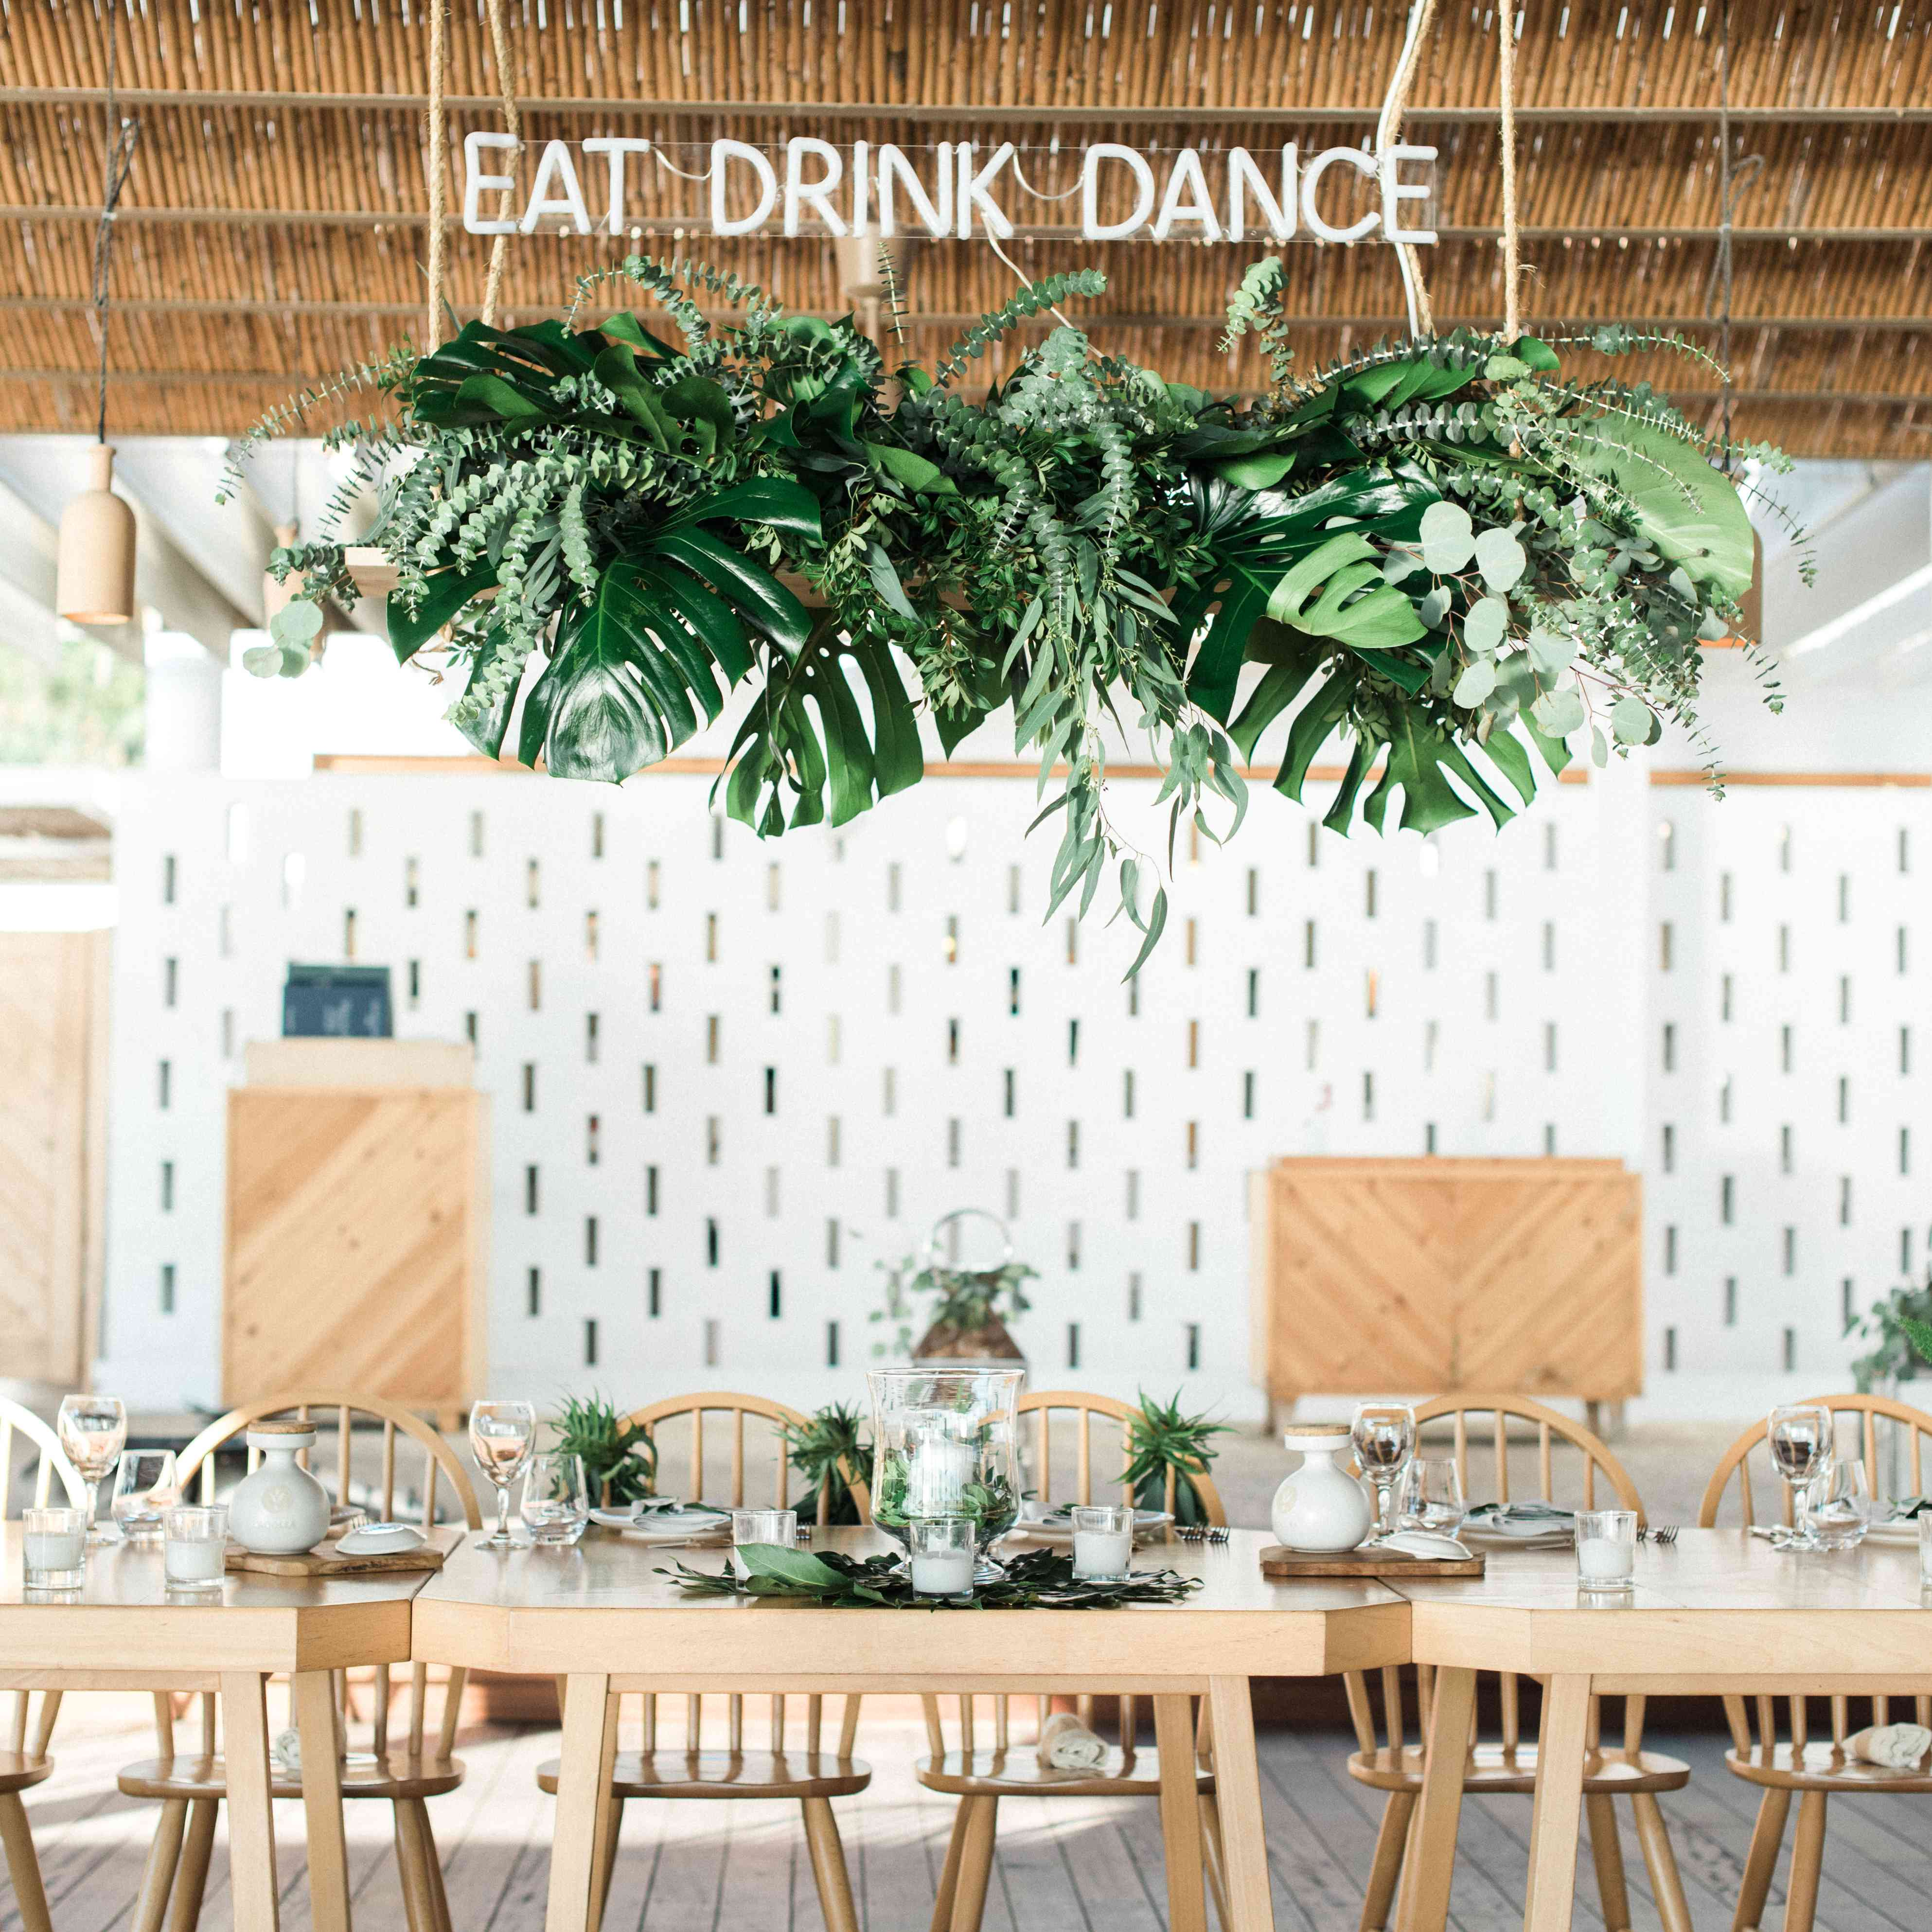 A hanging greenery installation with